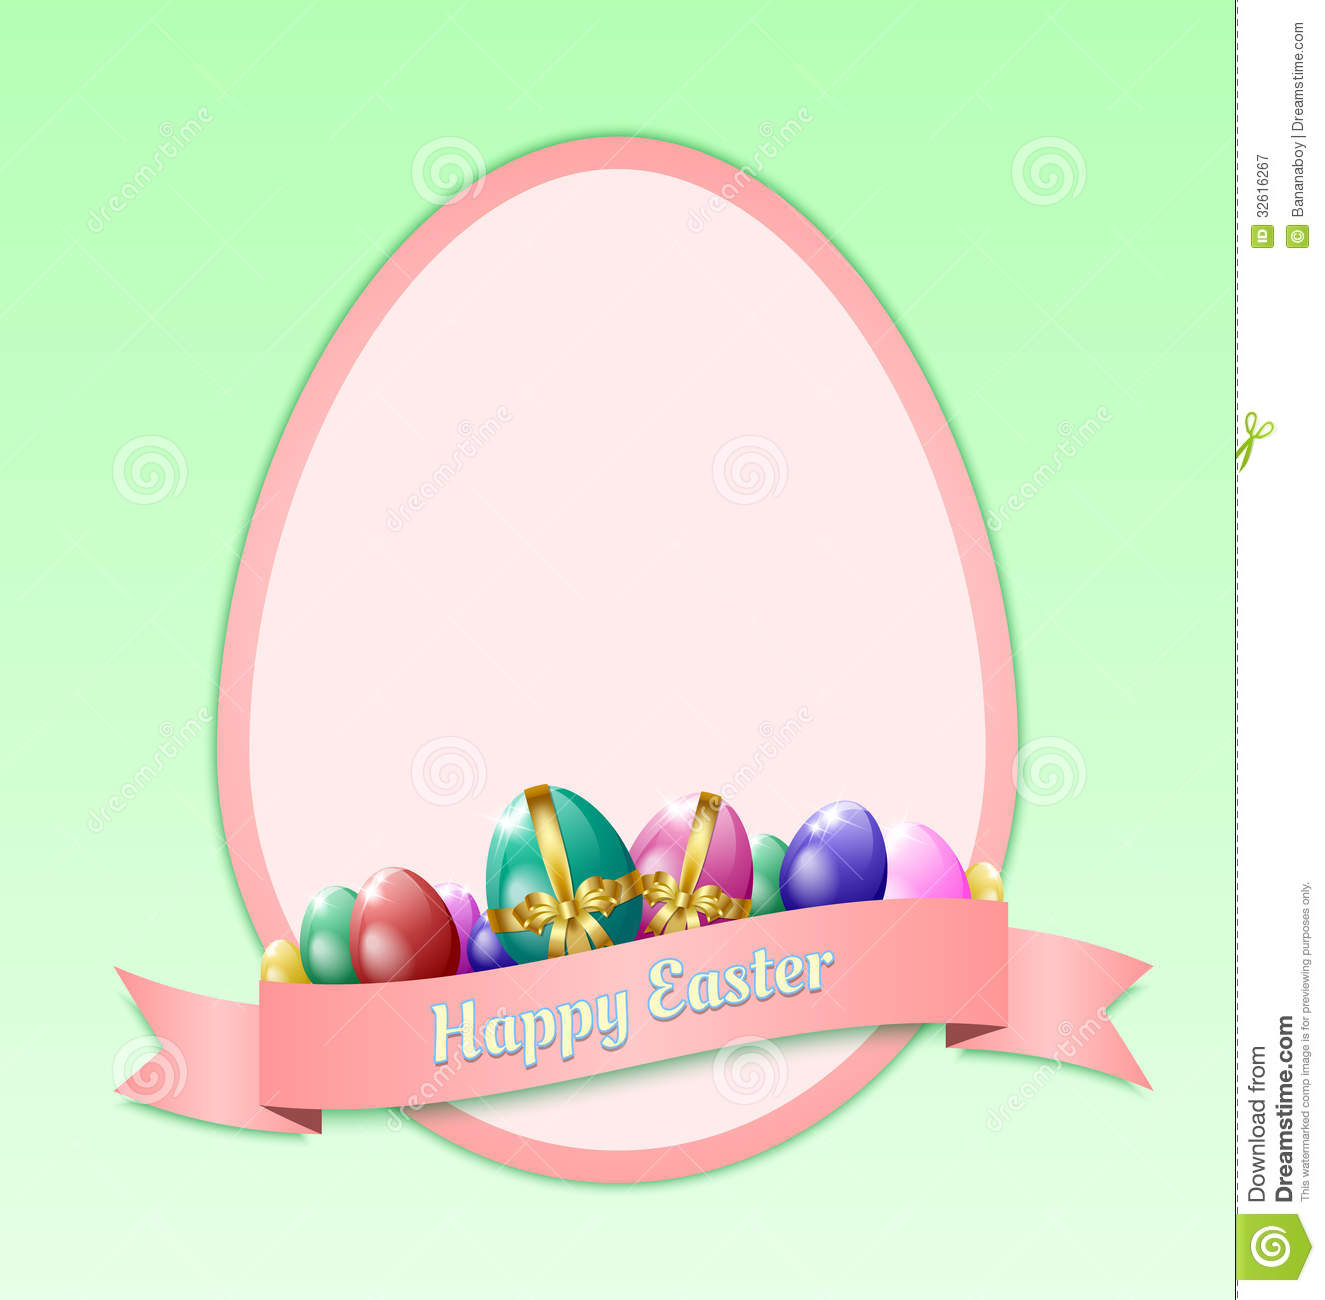 Happy Easter Greeting Card Template Stock Vector Illustration Of